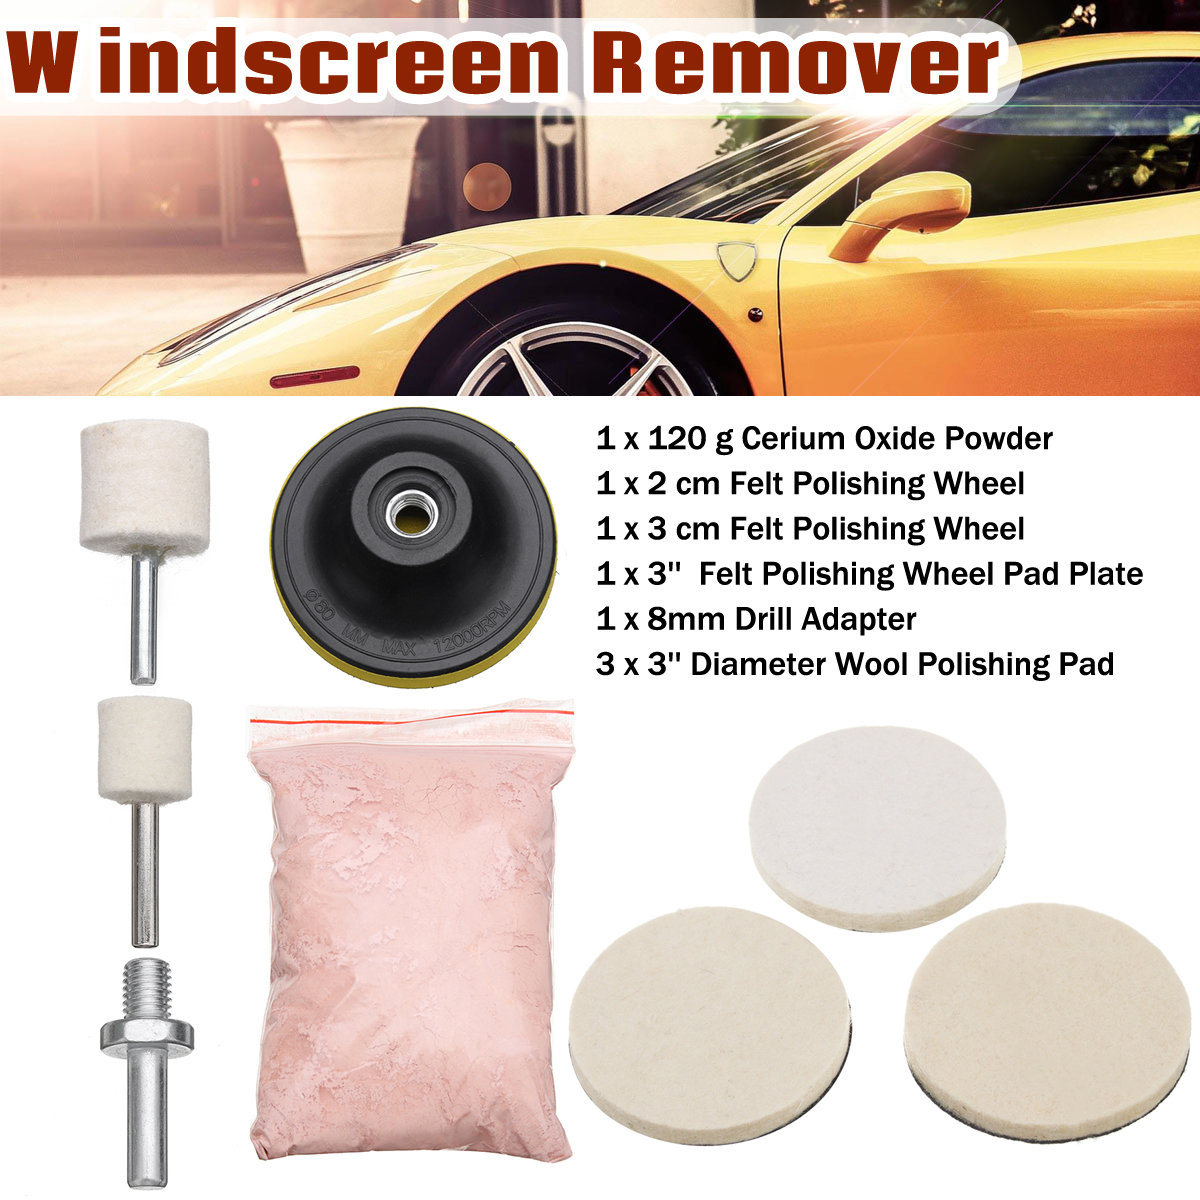 New 8Pcs 120g Cerium Oxide Glass Polishing Powder Kit Deep Scratch Remover For Windscreen Windows Glass Cleaning Scratch Removal